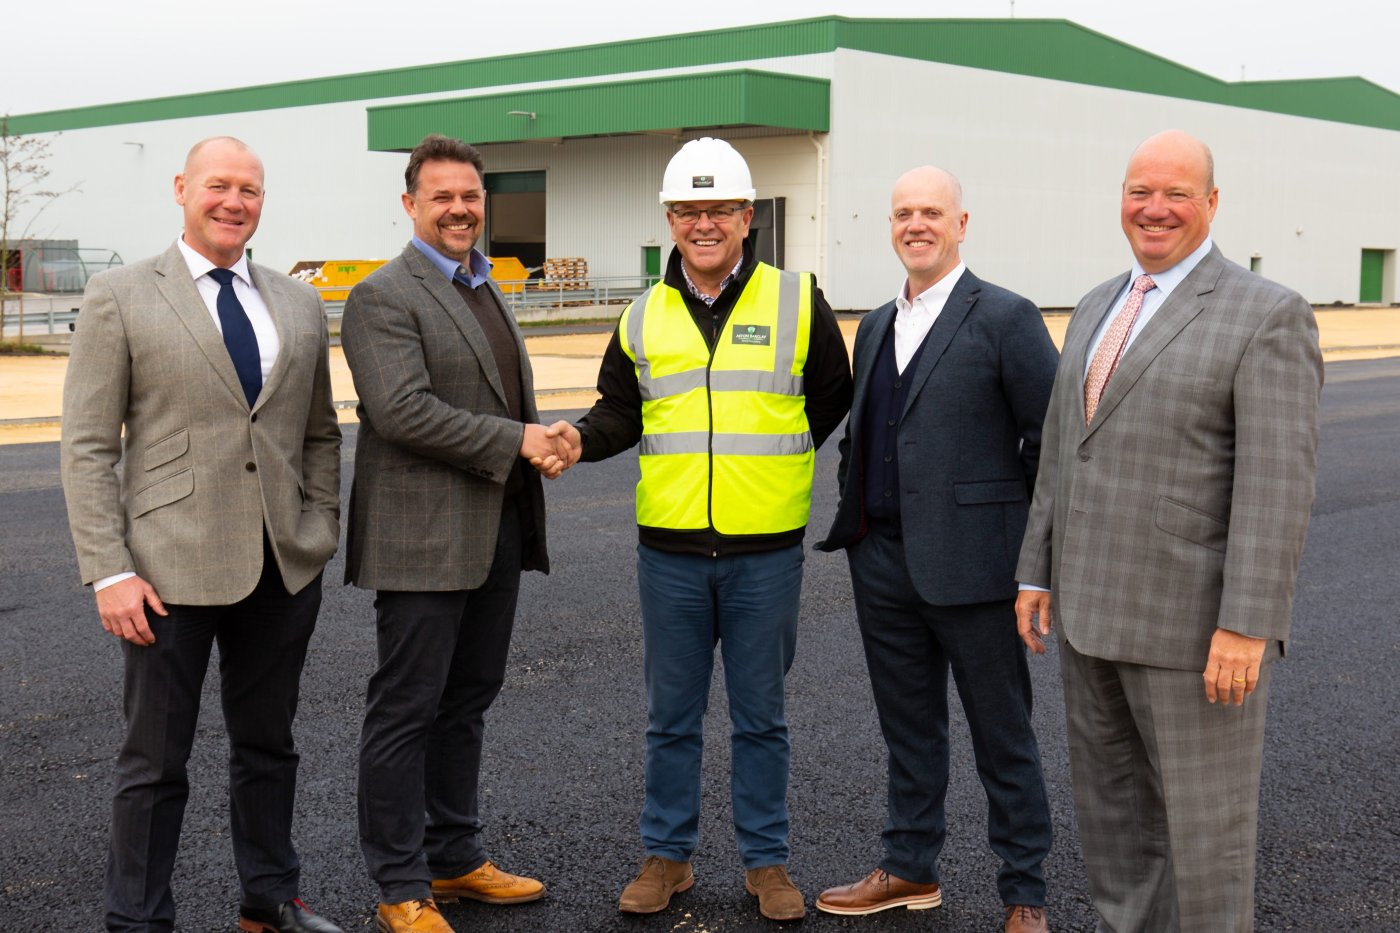 (from L-R) Simon Rhodes of Rhodes CRE with Illuminating Investments Director David Aspland, Roland Whittington, Project Director at Aston Barclay and Illuminating Investments Directors Michael McDonnell and John McDonnell, outside the new car auction centre at Photon Park